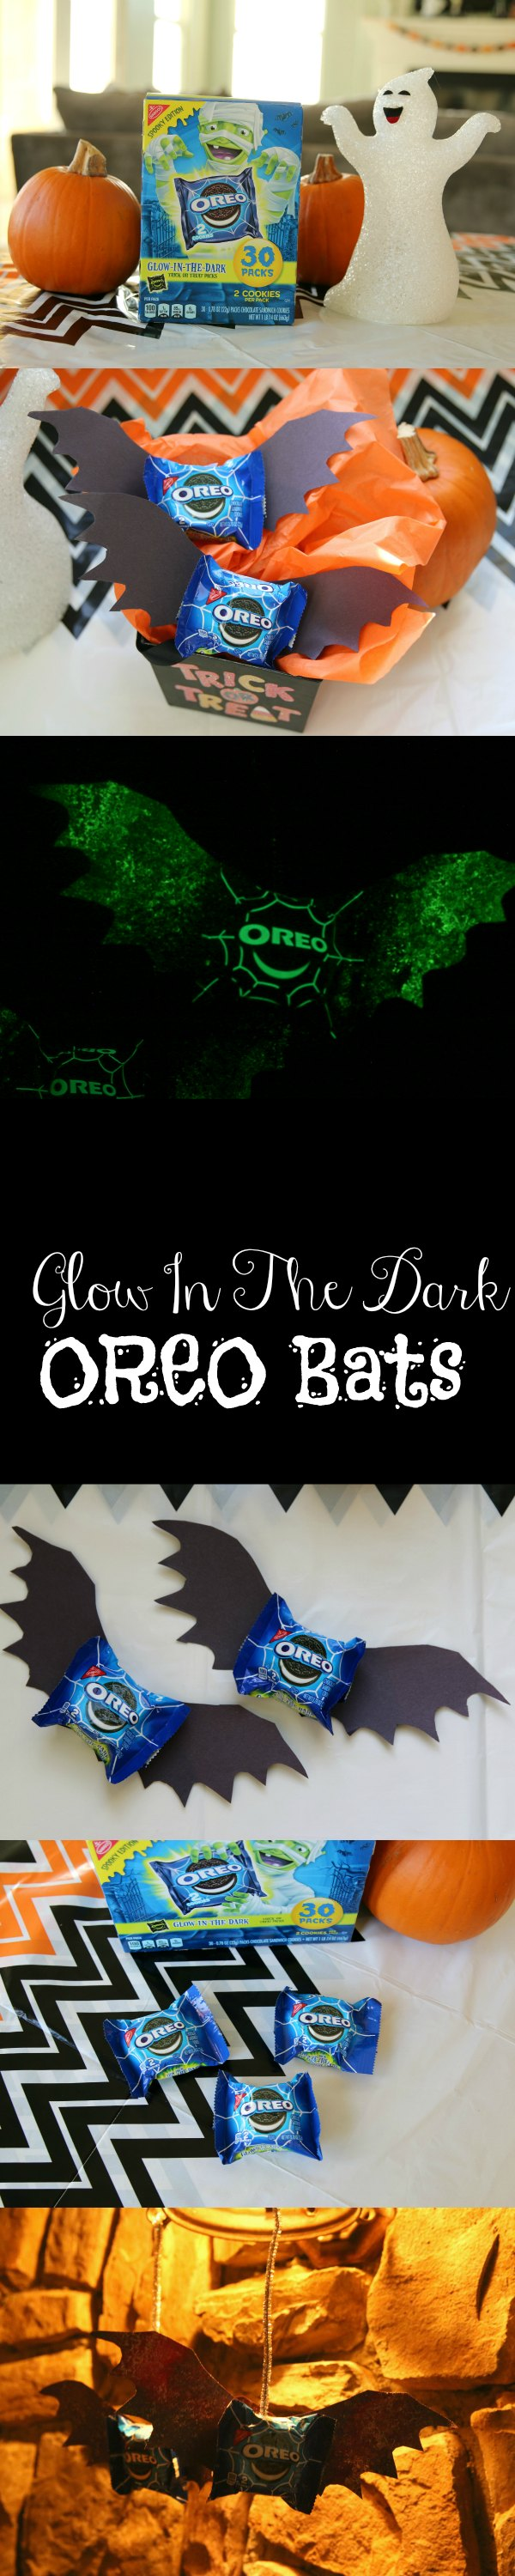 glow in the dark oreo bats for halloween